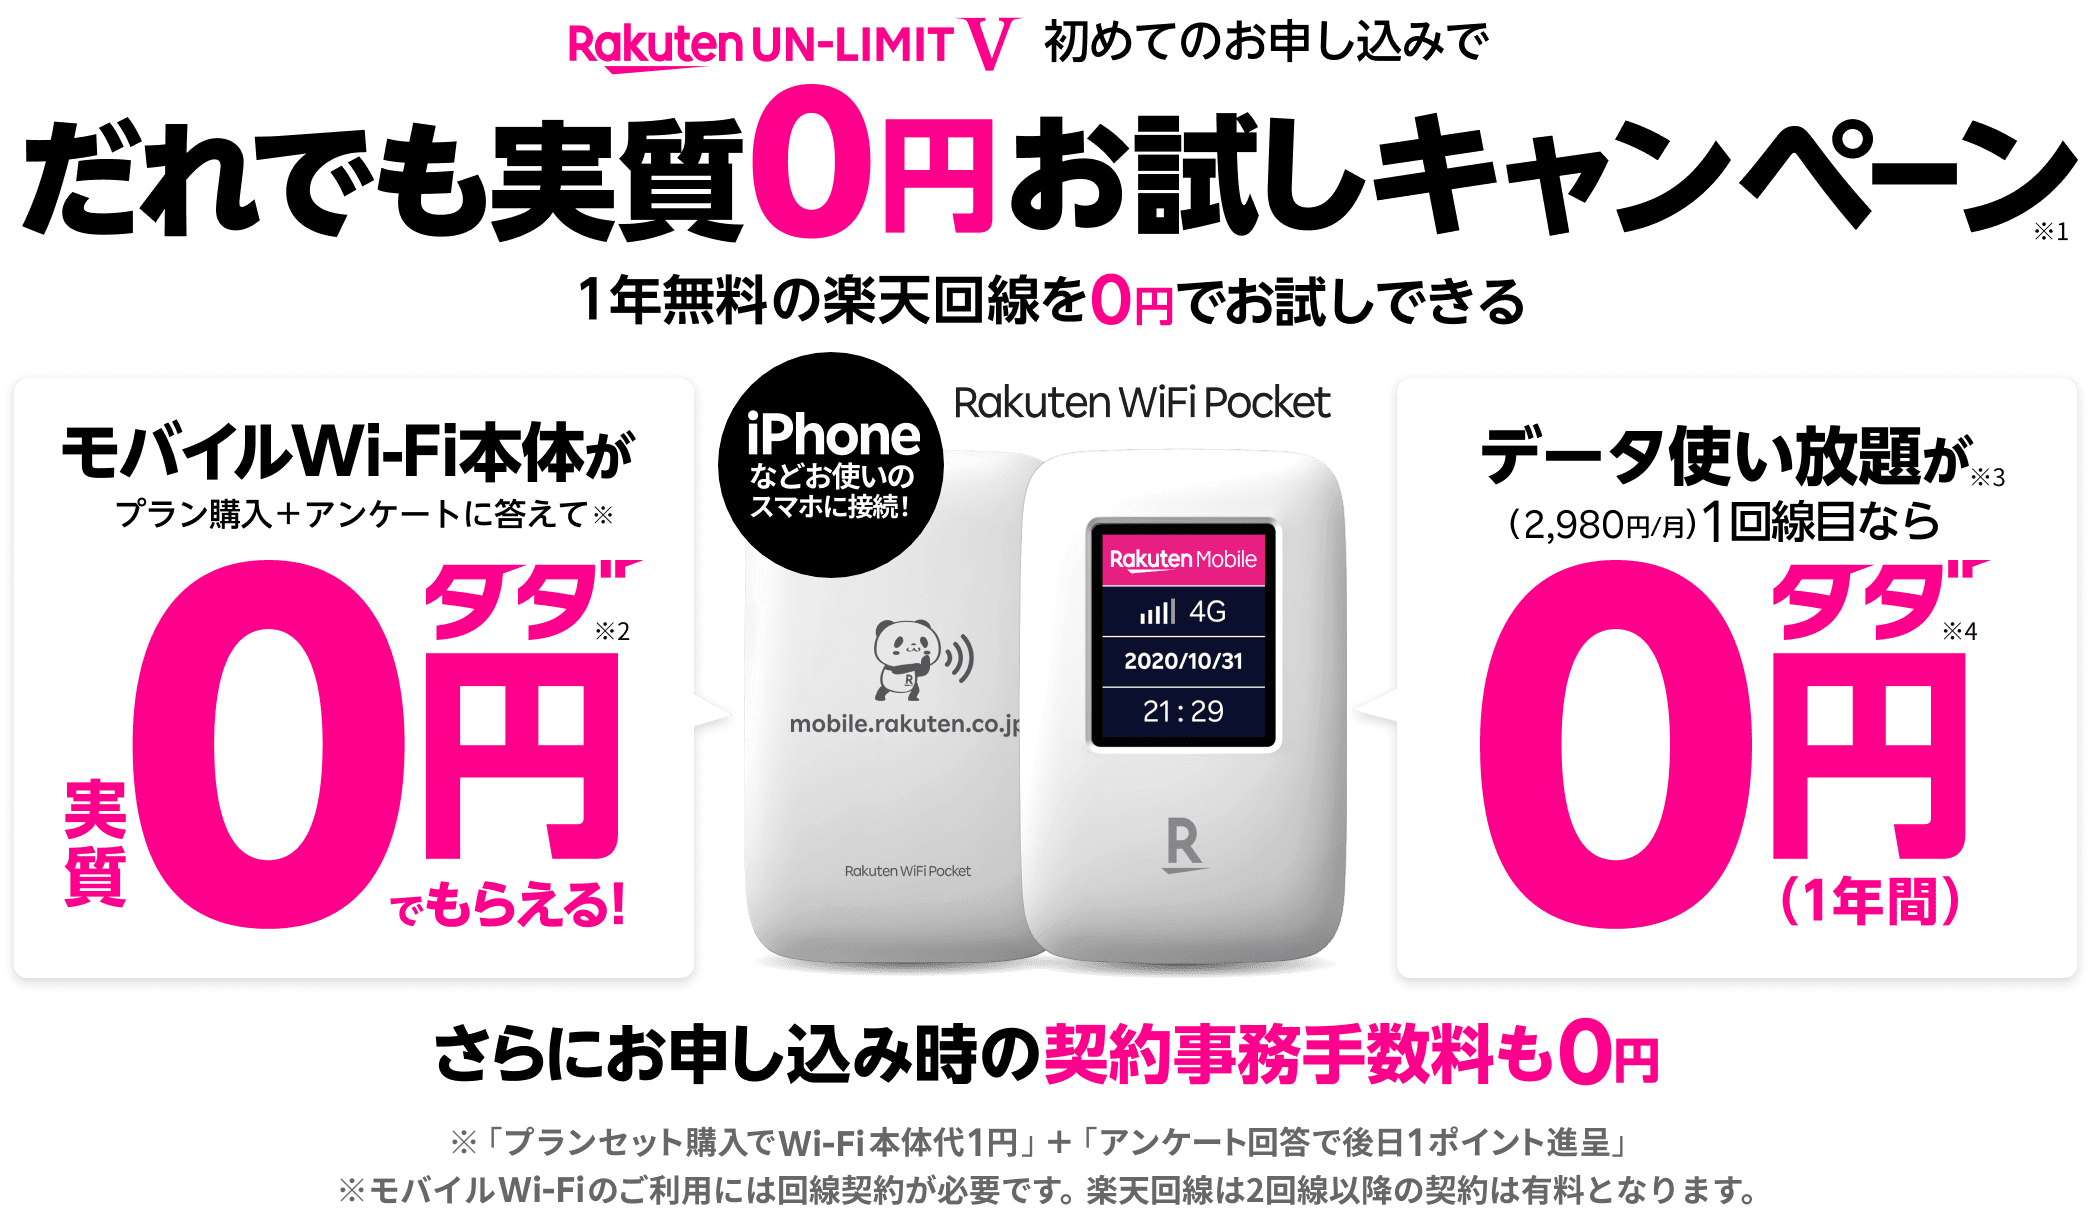 rakuten-wifi-pocket-0yen-1